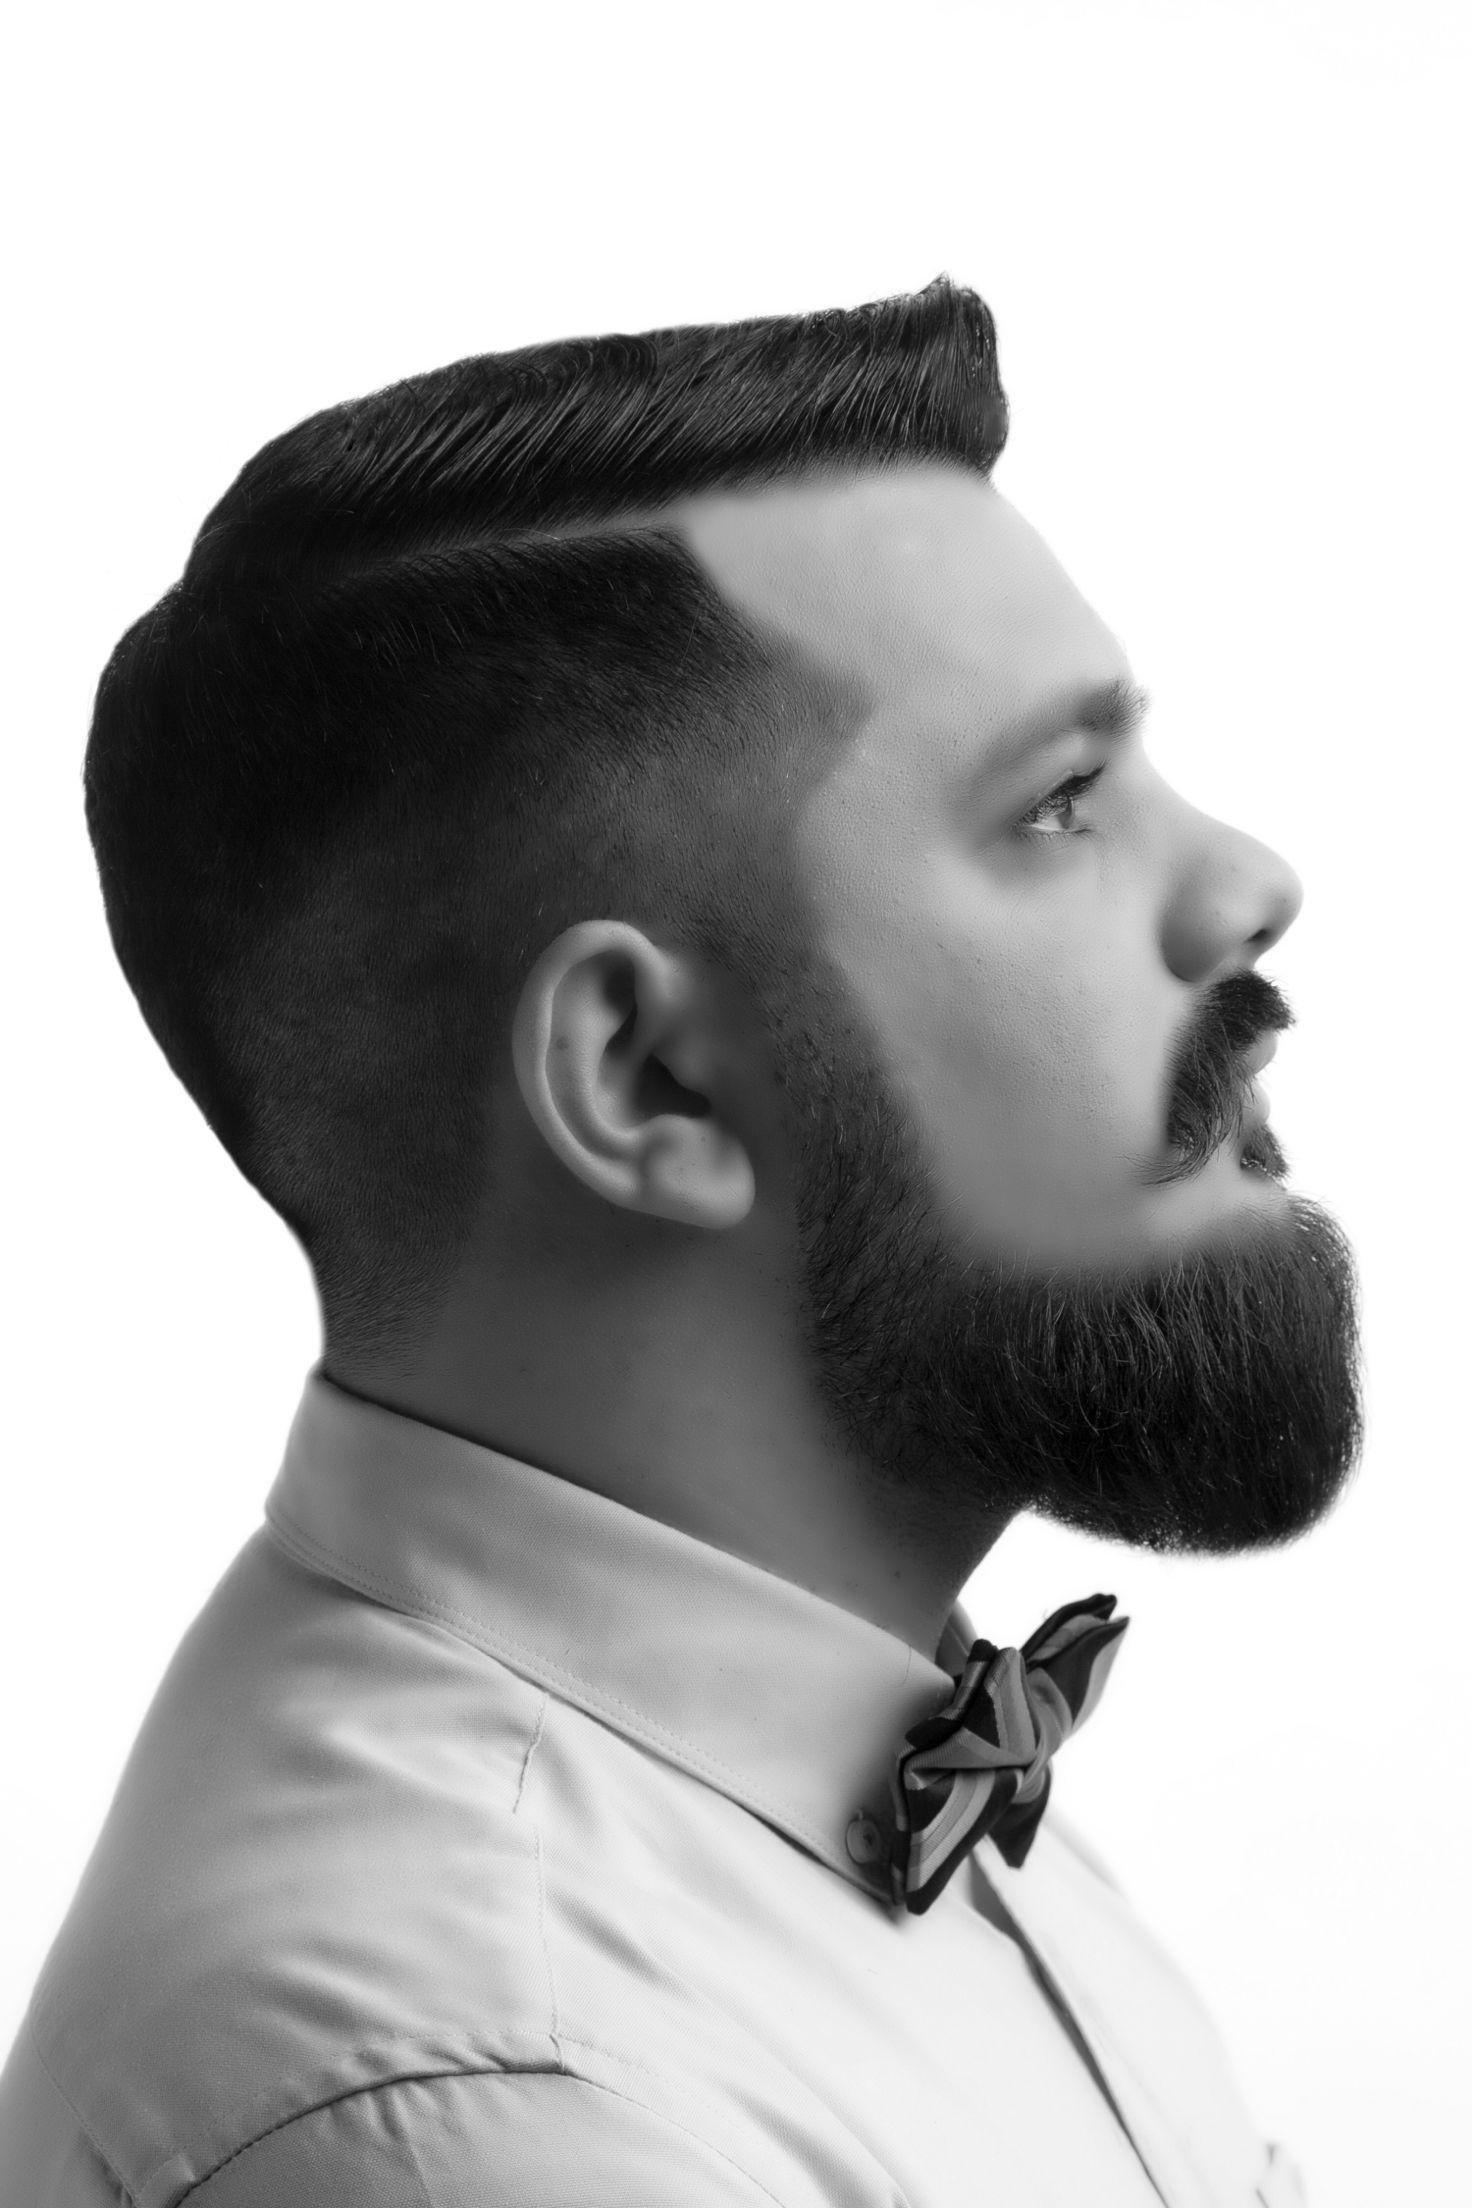 coiffure homme barbe latest homme chignon manbun coiffure with coiffure homme barbe coiffeur. Black Bedroom Furniture Sets. Home Design Ideas